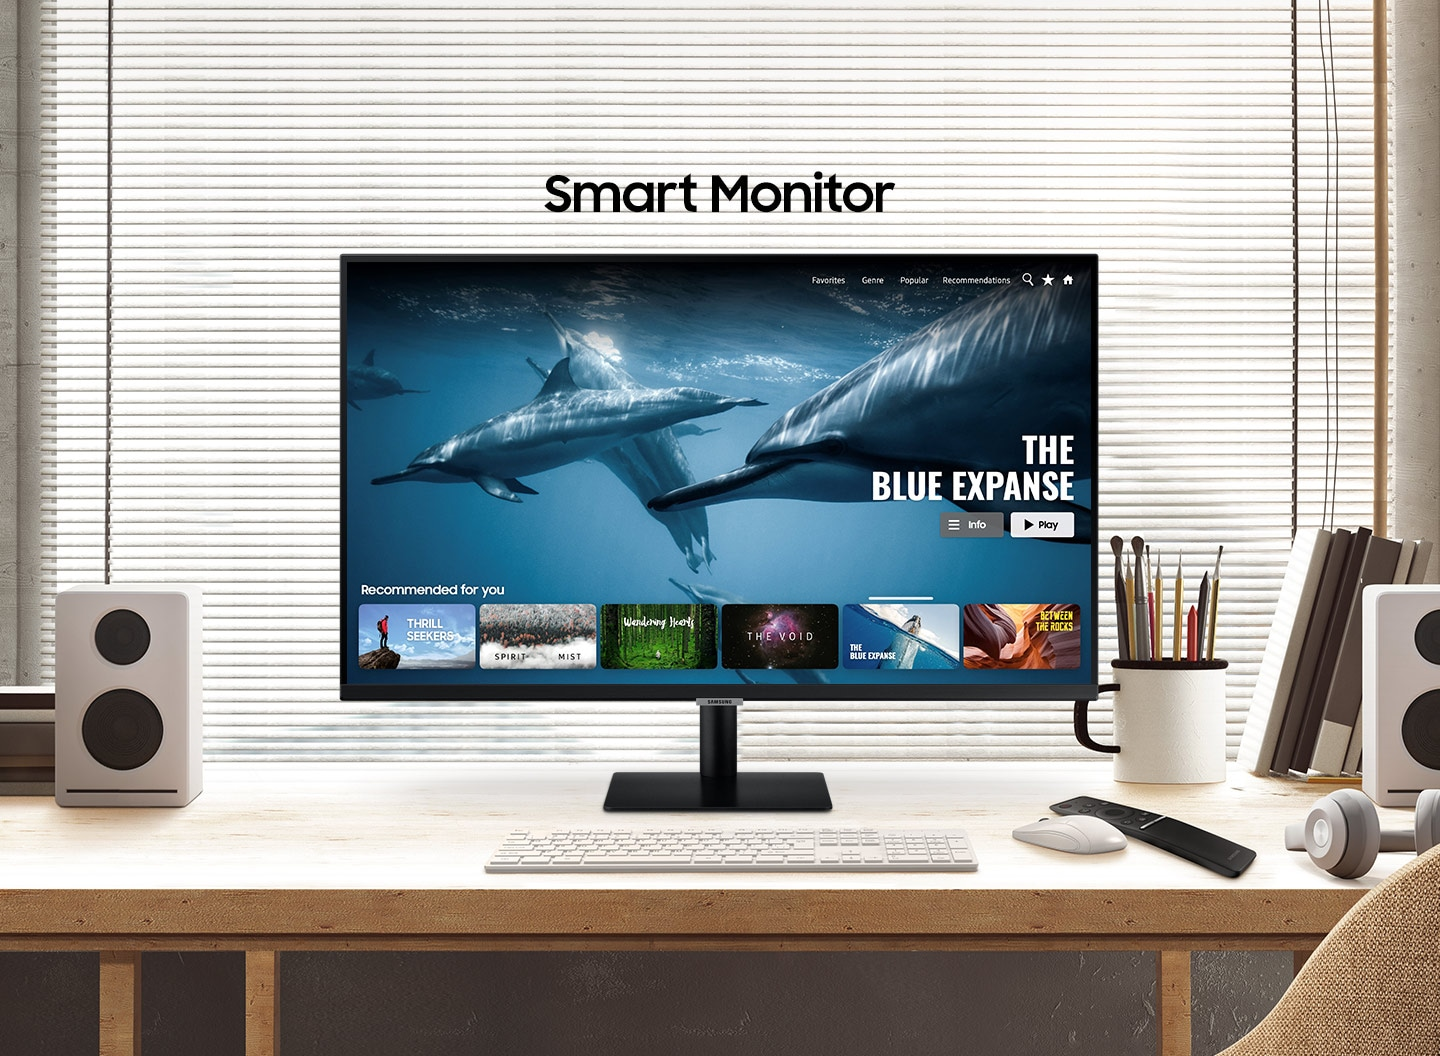 Below the title \One for all,\ a vertical line divides two different images of a monitor. The line slides right to reveal an office desk with powerpoint on the monitor and the words \Work Smart\, and slides left to reveal a home desk with a movie playing on the monitor and the words \Play Smart.\